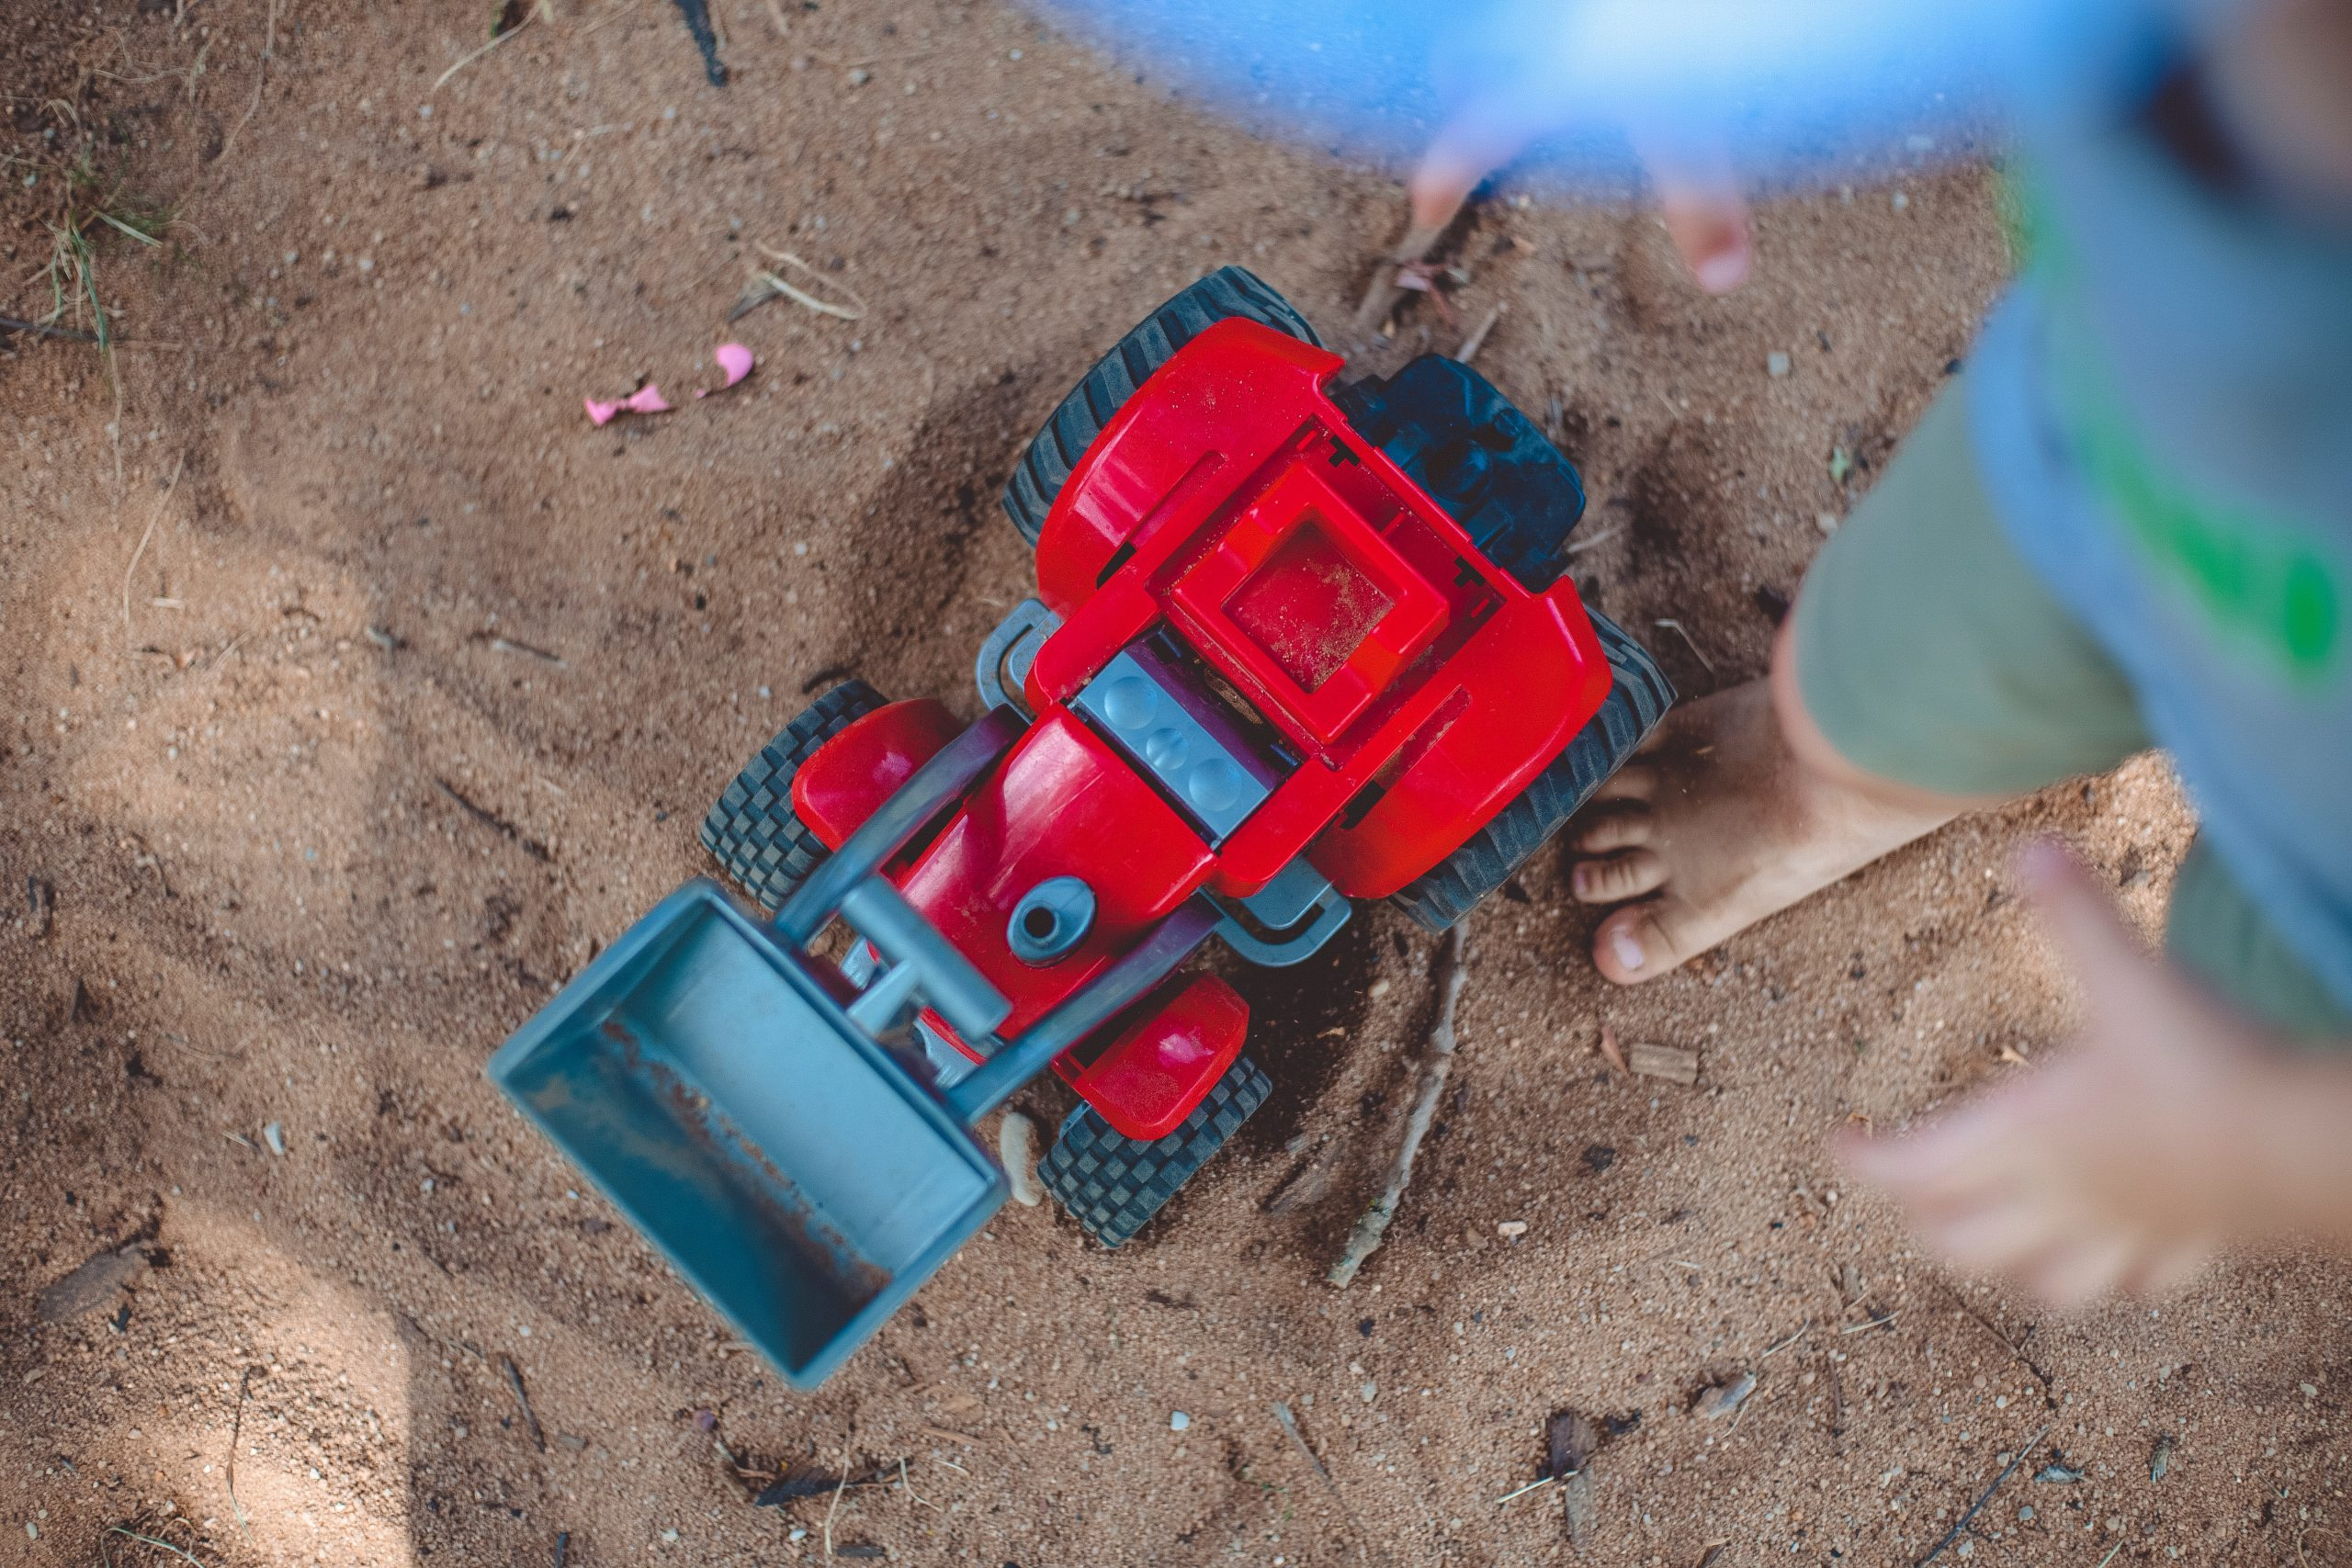 This DIY sandbox with seats for kids is going to SERIOUSLY be a hit! You'll have the entire neighborhood at your house having fun before you know it. You don't want to miss this!